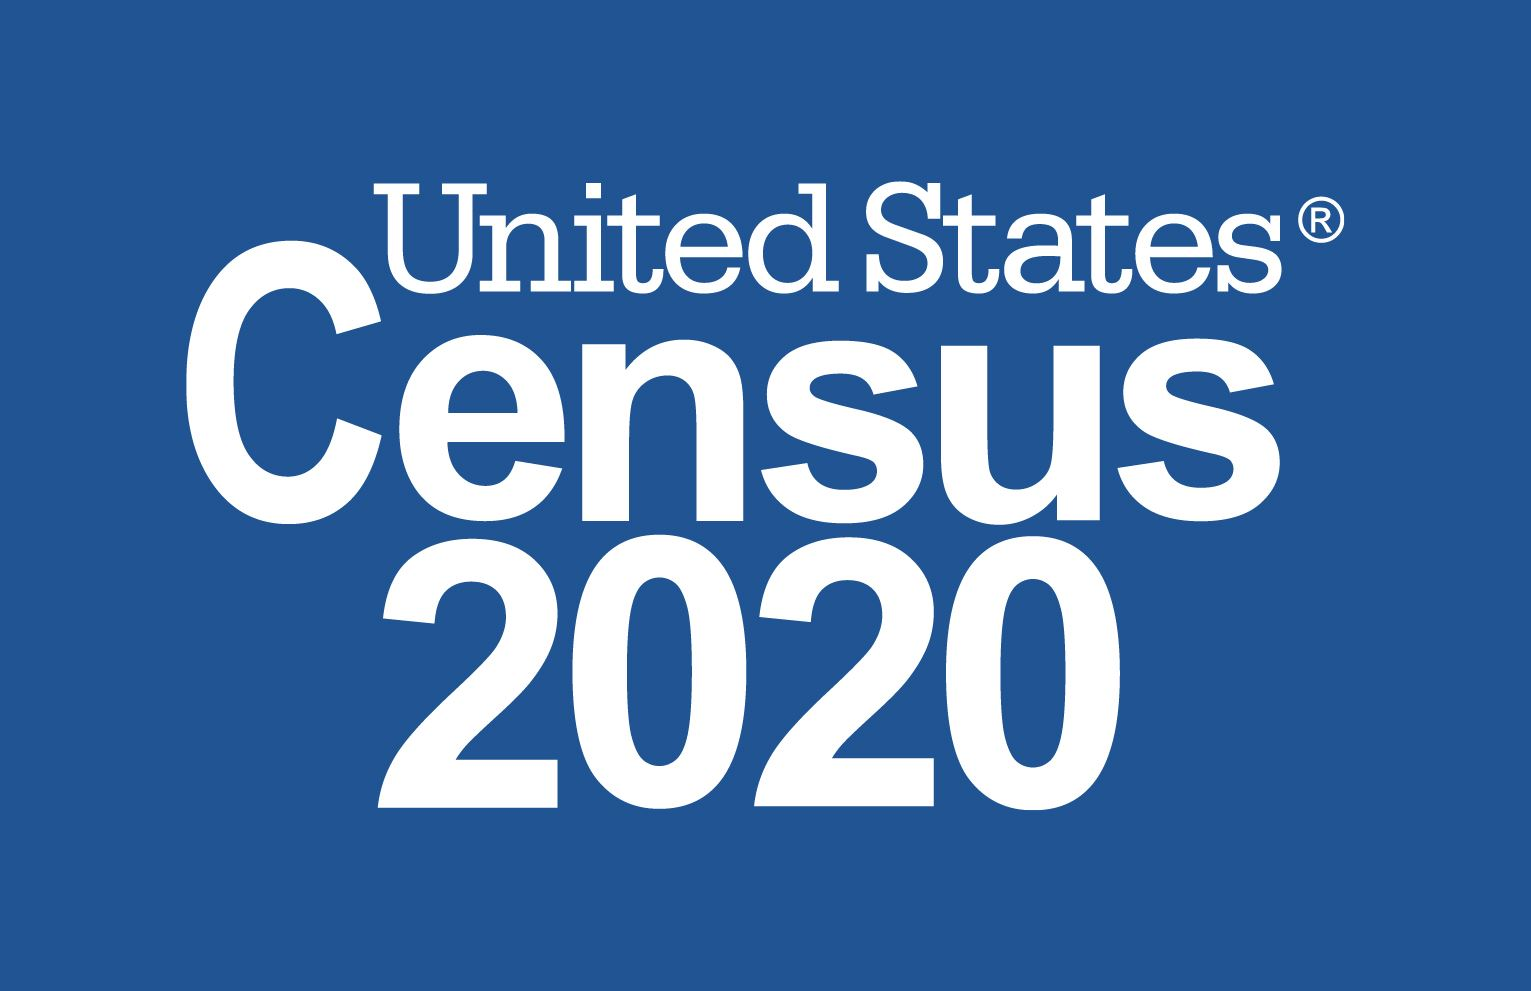 US_Census2020_Logos-05